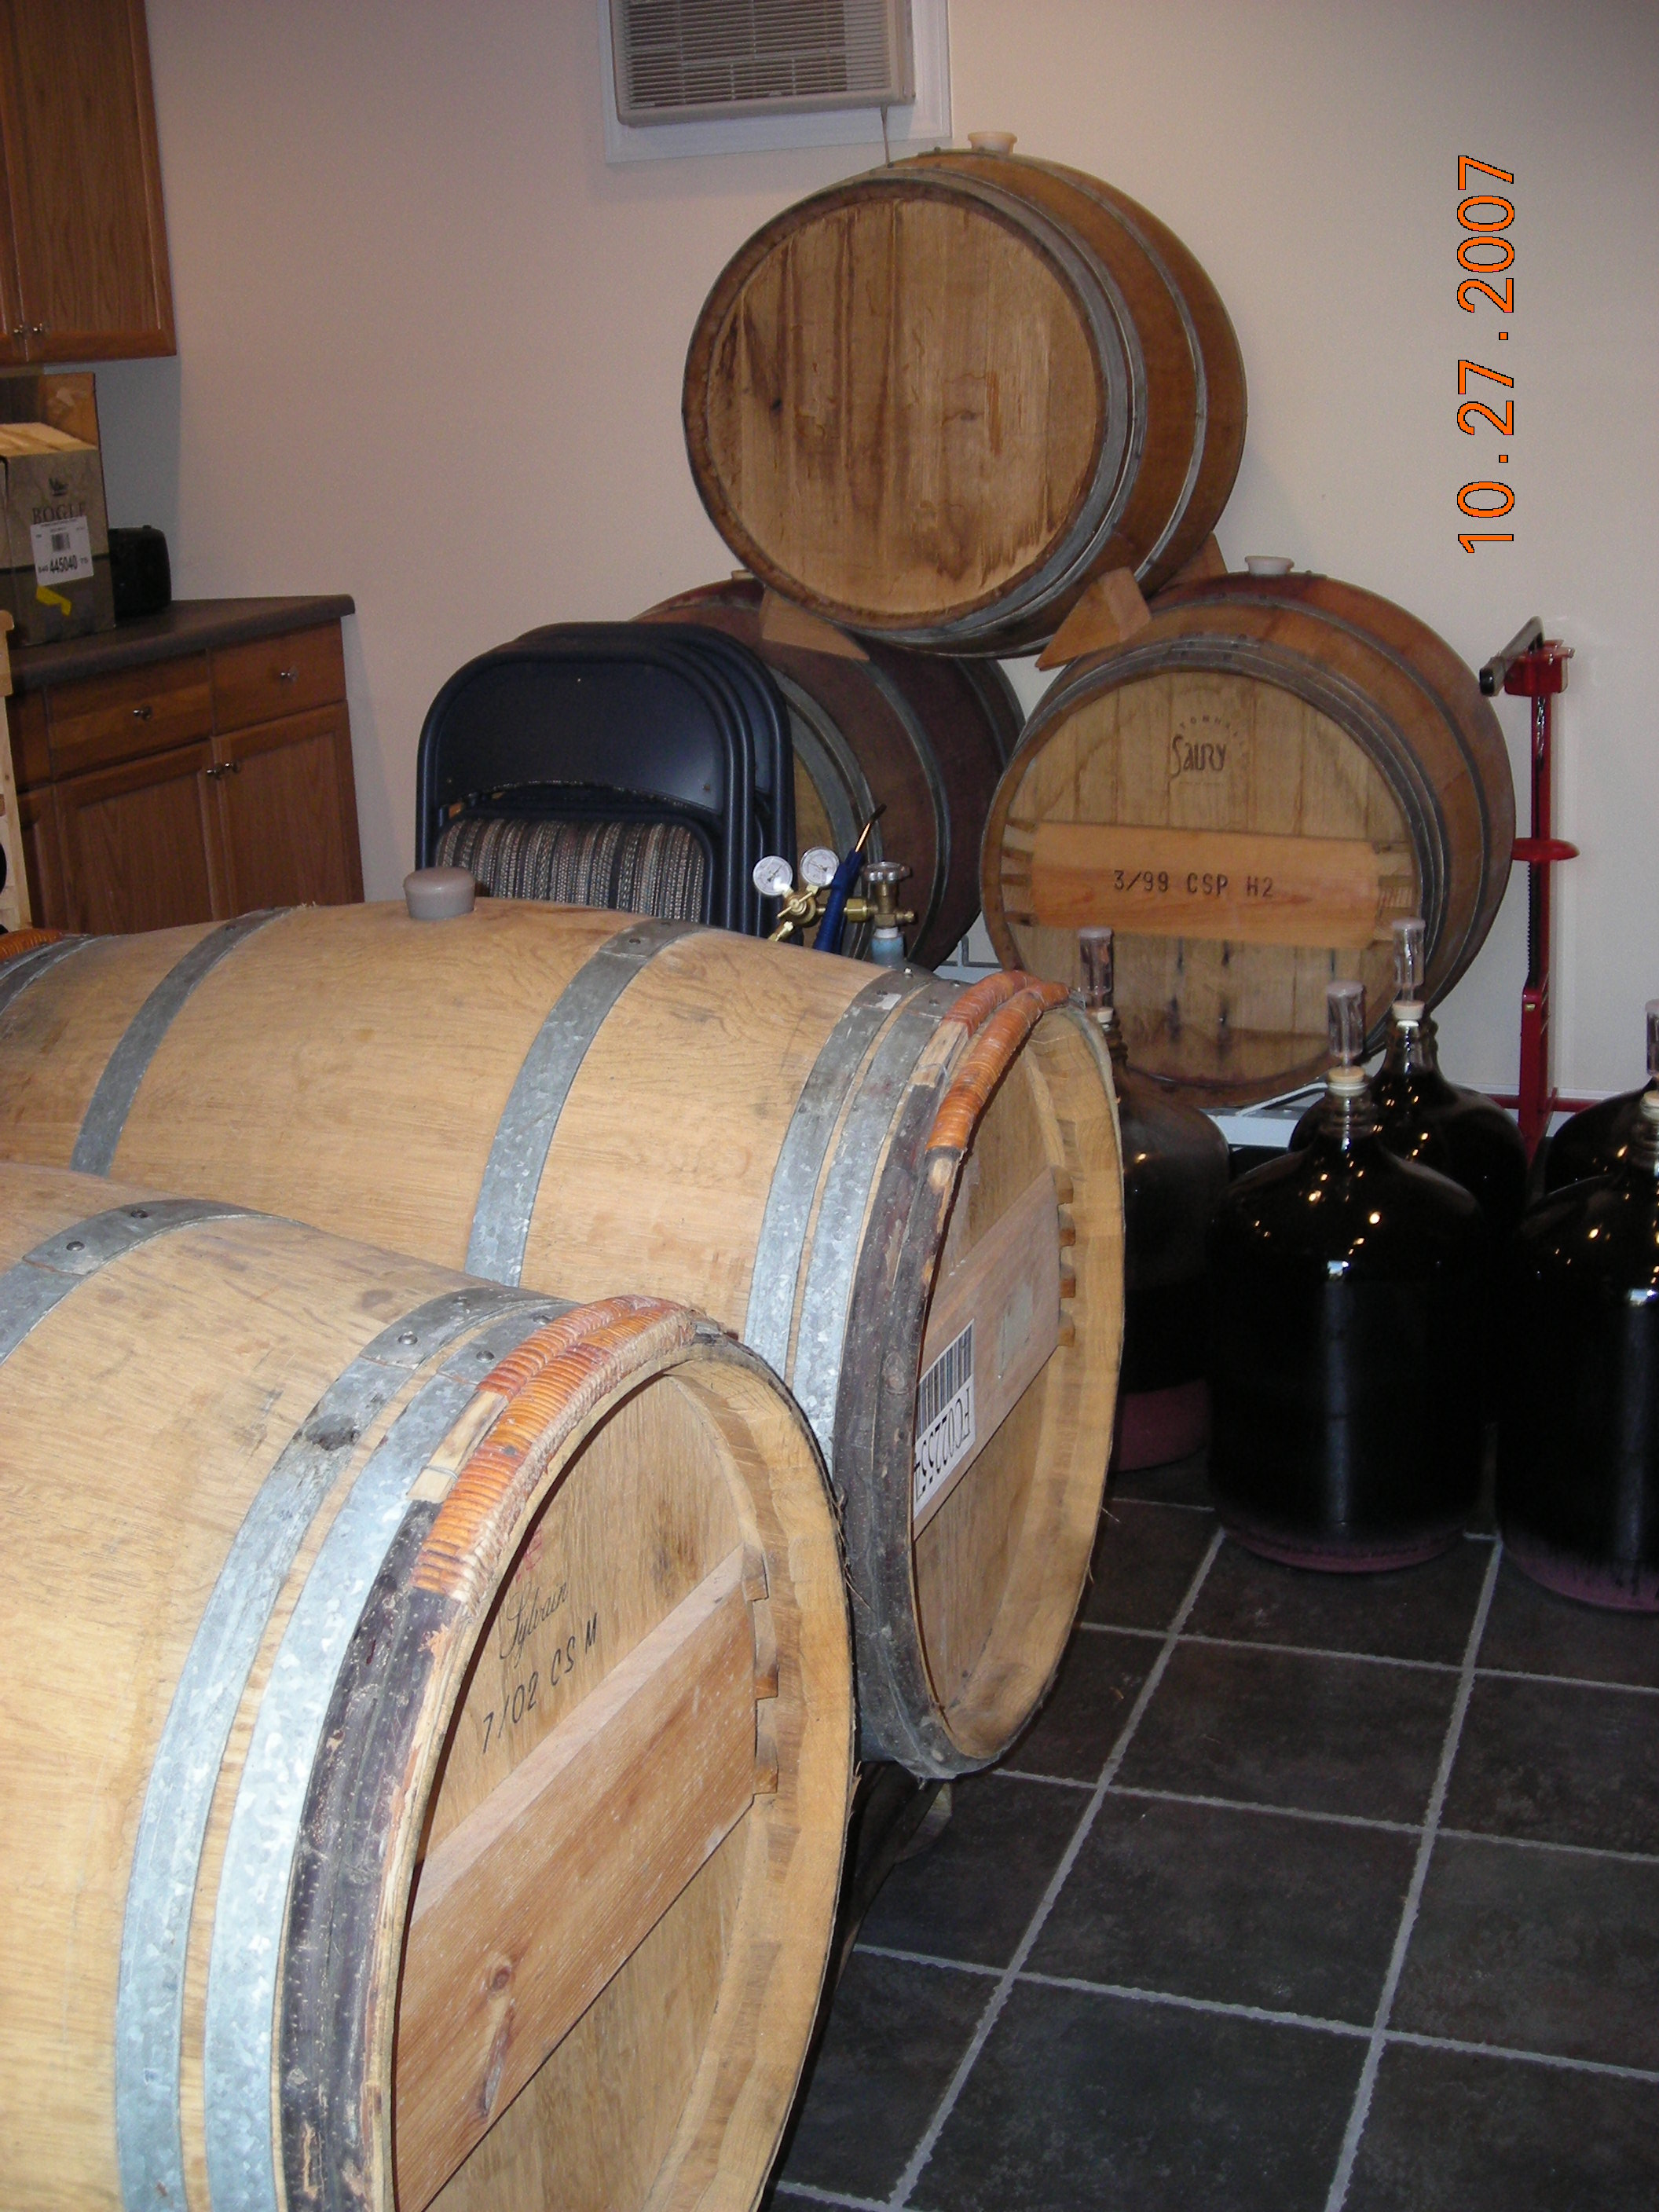 New barrels - purchased 10/24/07.